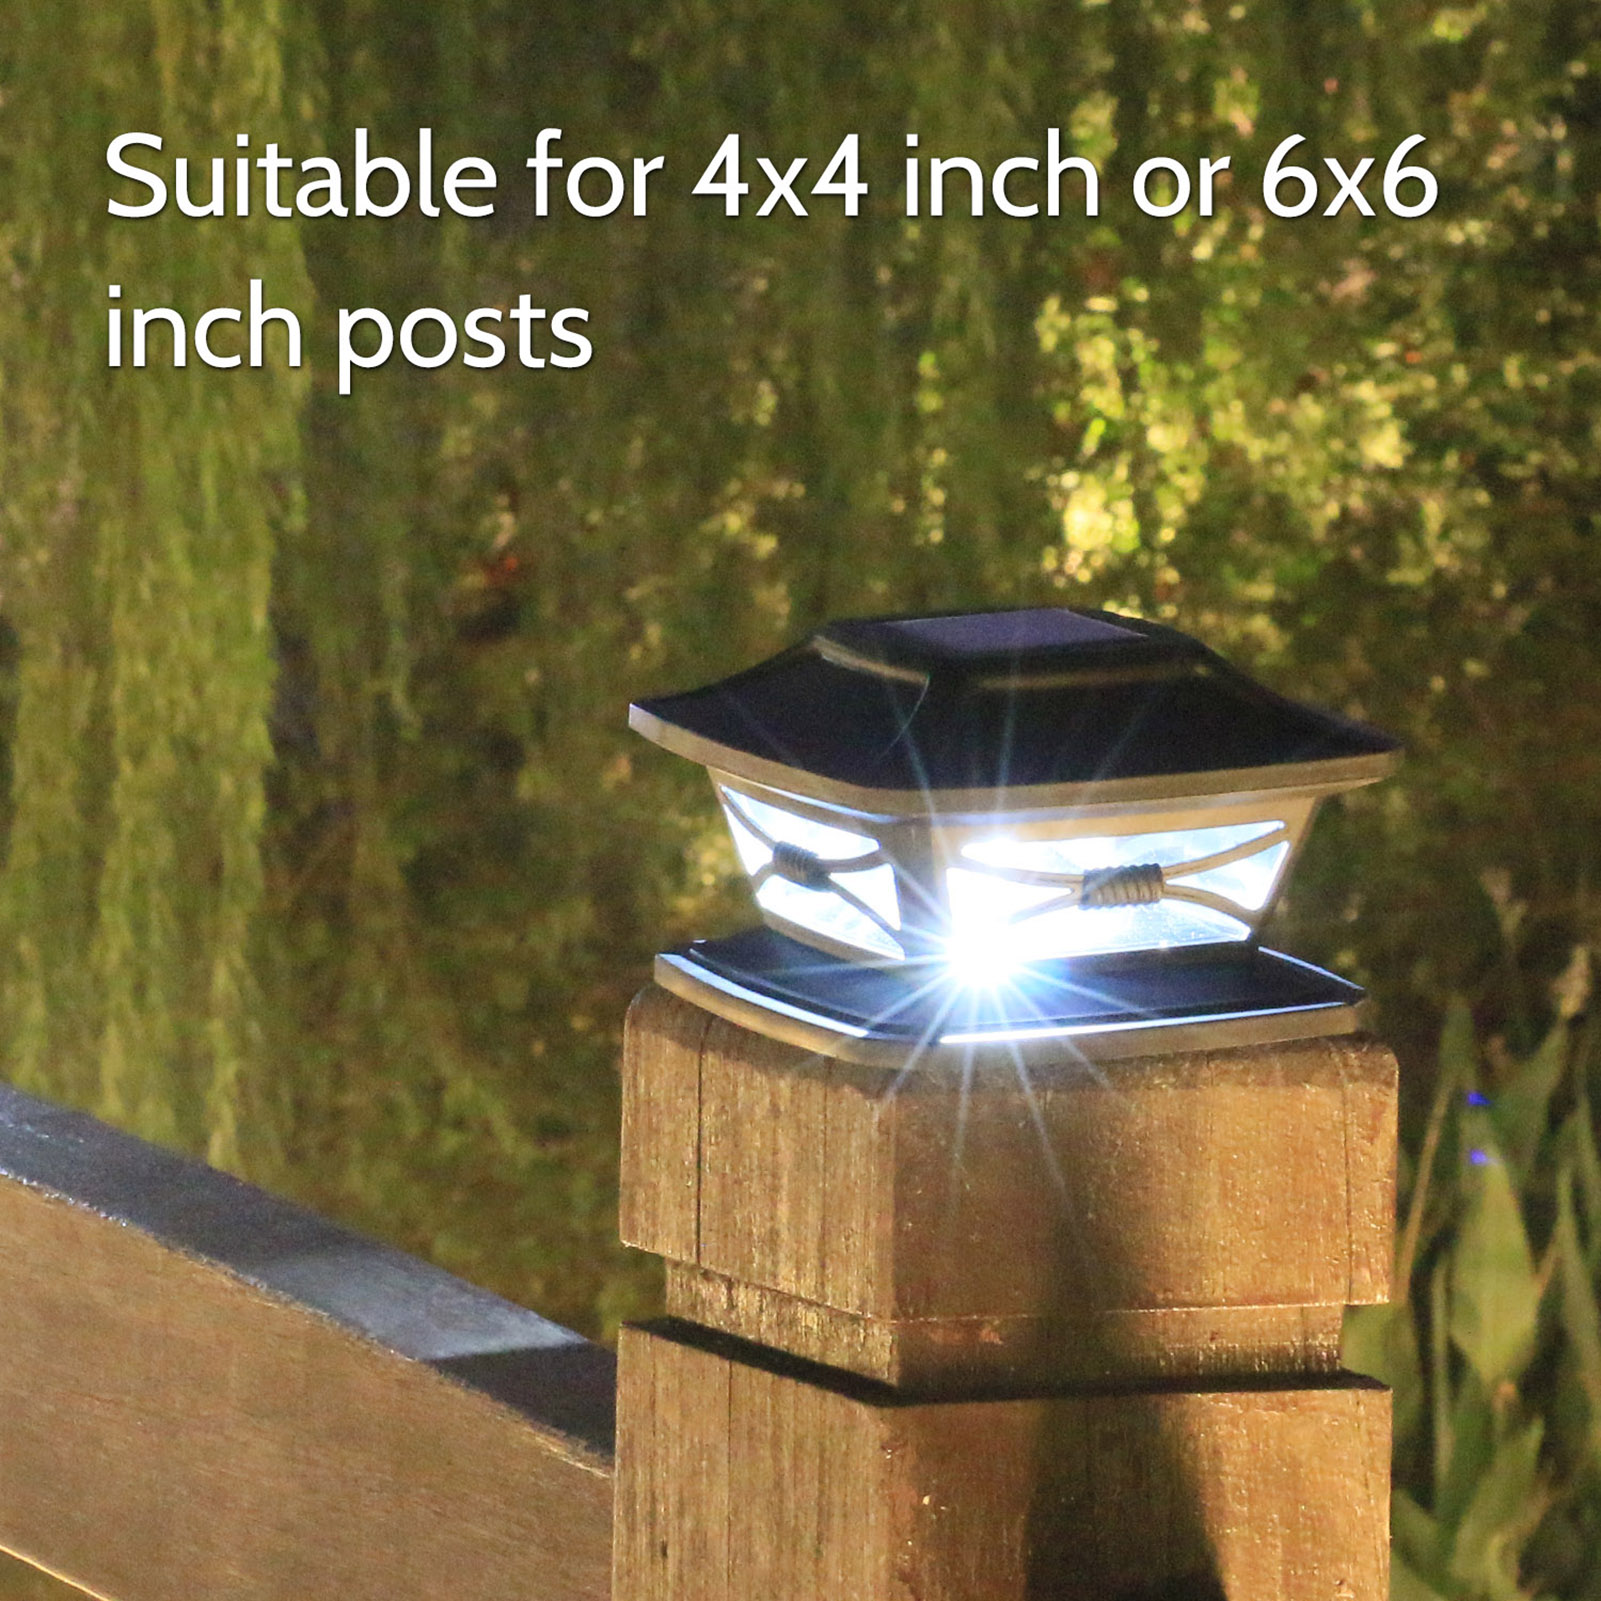 walmeck solar post lights garden landscape lamp ip44 water resistant outdoor post cap lights for fence deck patio fits 4x4 or 6x6 posts watercolour paper mishavig toys games